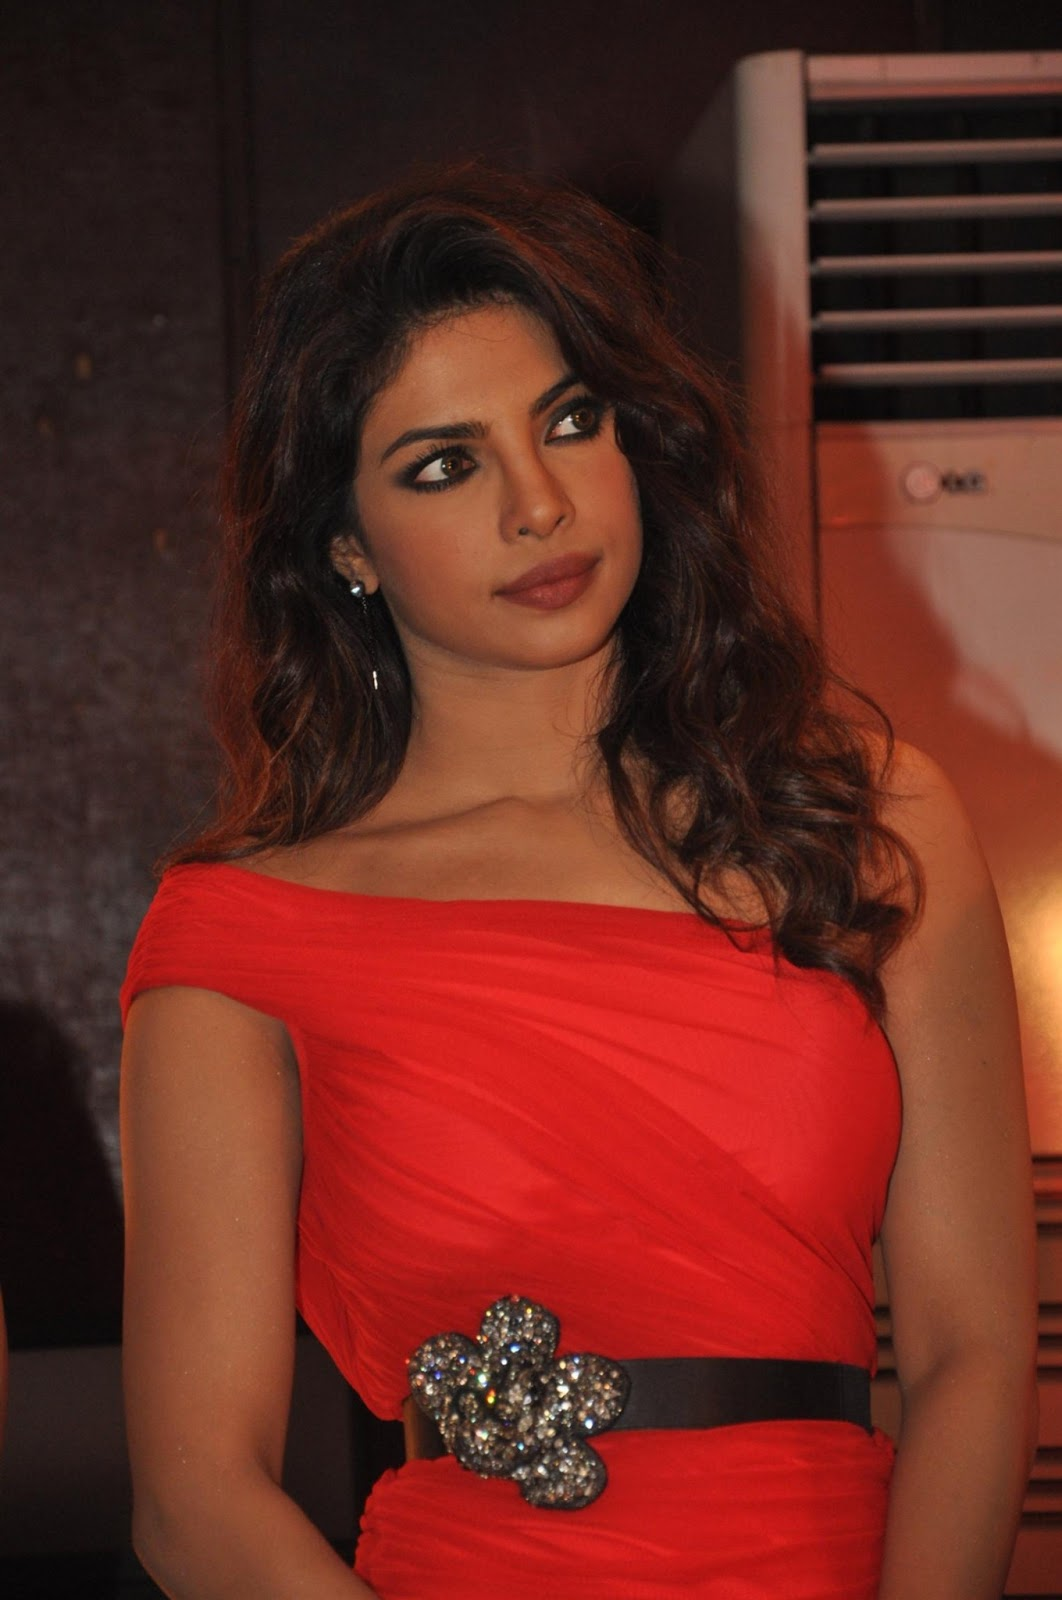 Priyanka Chopra Hot Photos Priyanka Chopra Hot Photos,Priyanka Chopra Unseen Hot Photos, Priyanka Chopra Unseen Hot Pics, Priyanka Chopra Unseen Hot Stills, Priyanka Chopra Unseen Hot Pictures, Priyanka, Priyanka Chopra Hot Photo Shoot Photos,Priyanka Chopra Hot Photos,Hot Actress Priyanka Chopra Hot Photo Shoot Stills,